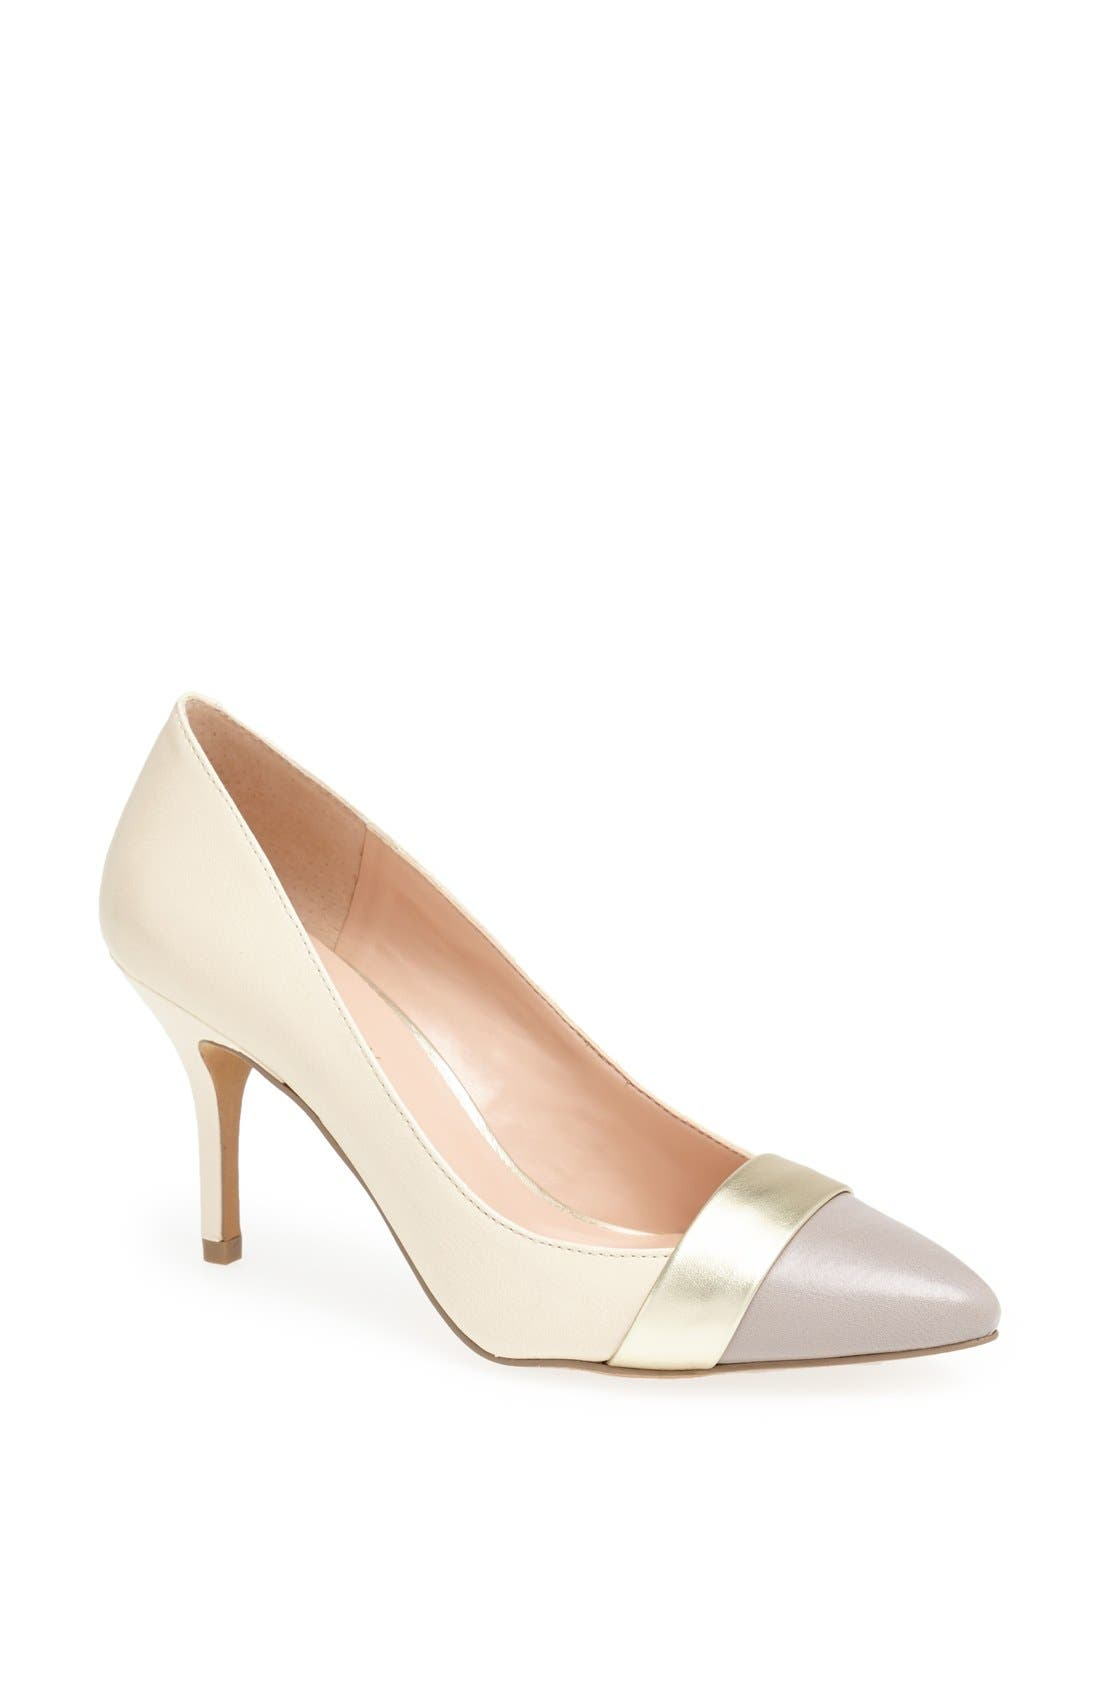 Alternate Image 1 Selected - Sole Society 'Yasmin' Pump